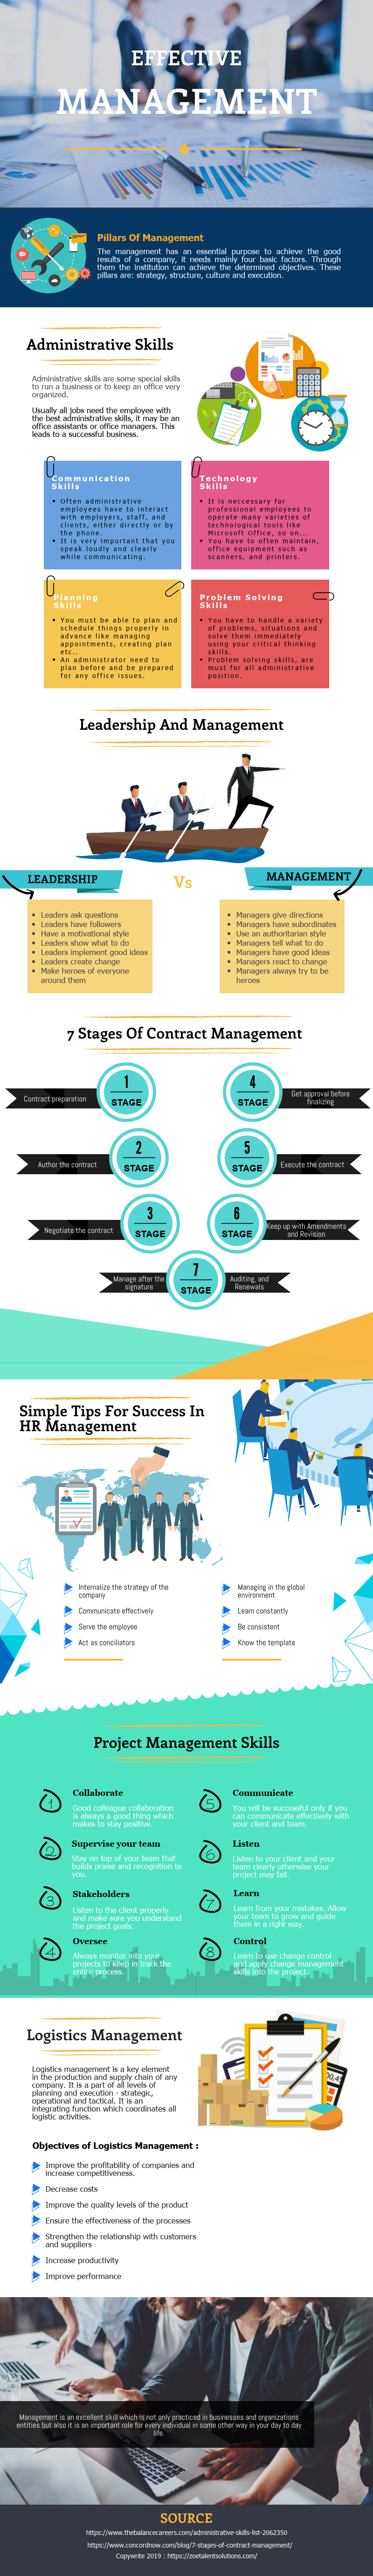 Effective Management 1 - 5 Tips To Make Business Management And More Efficient Planning